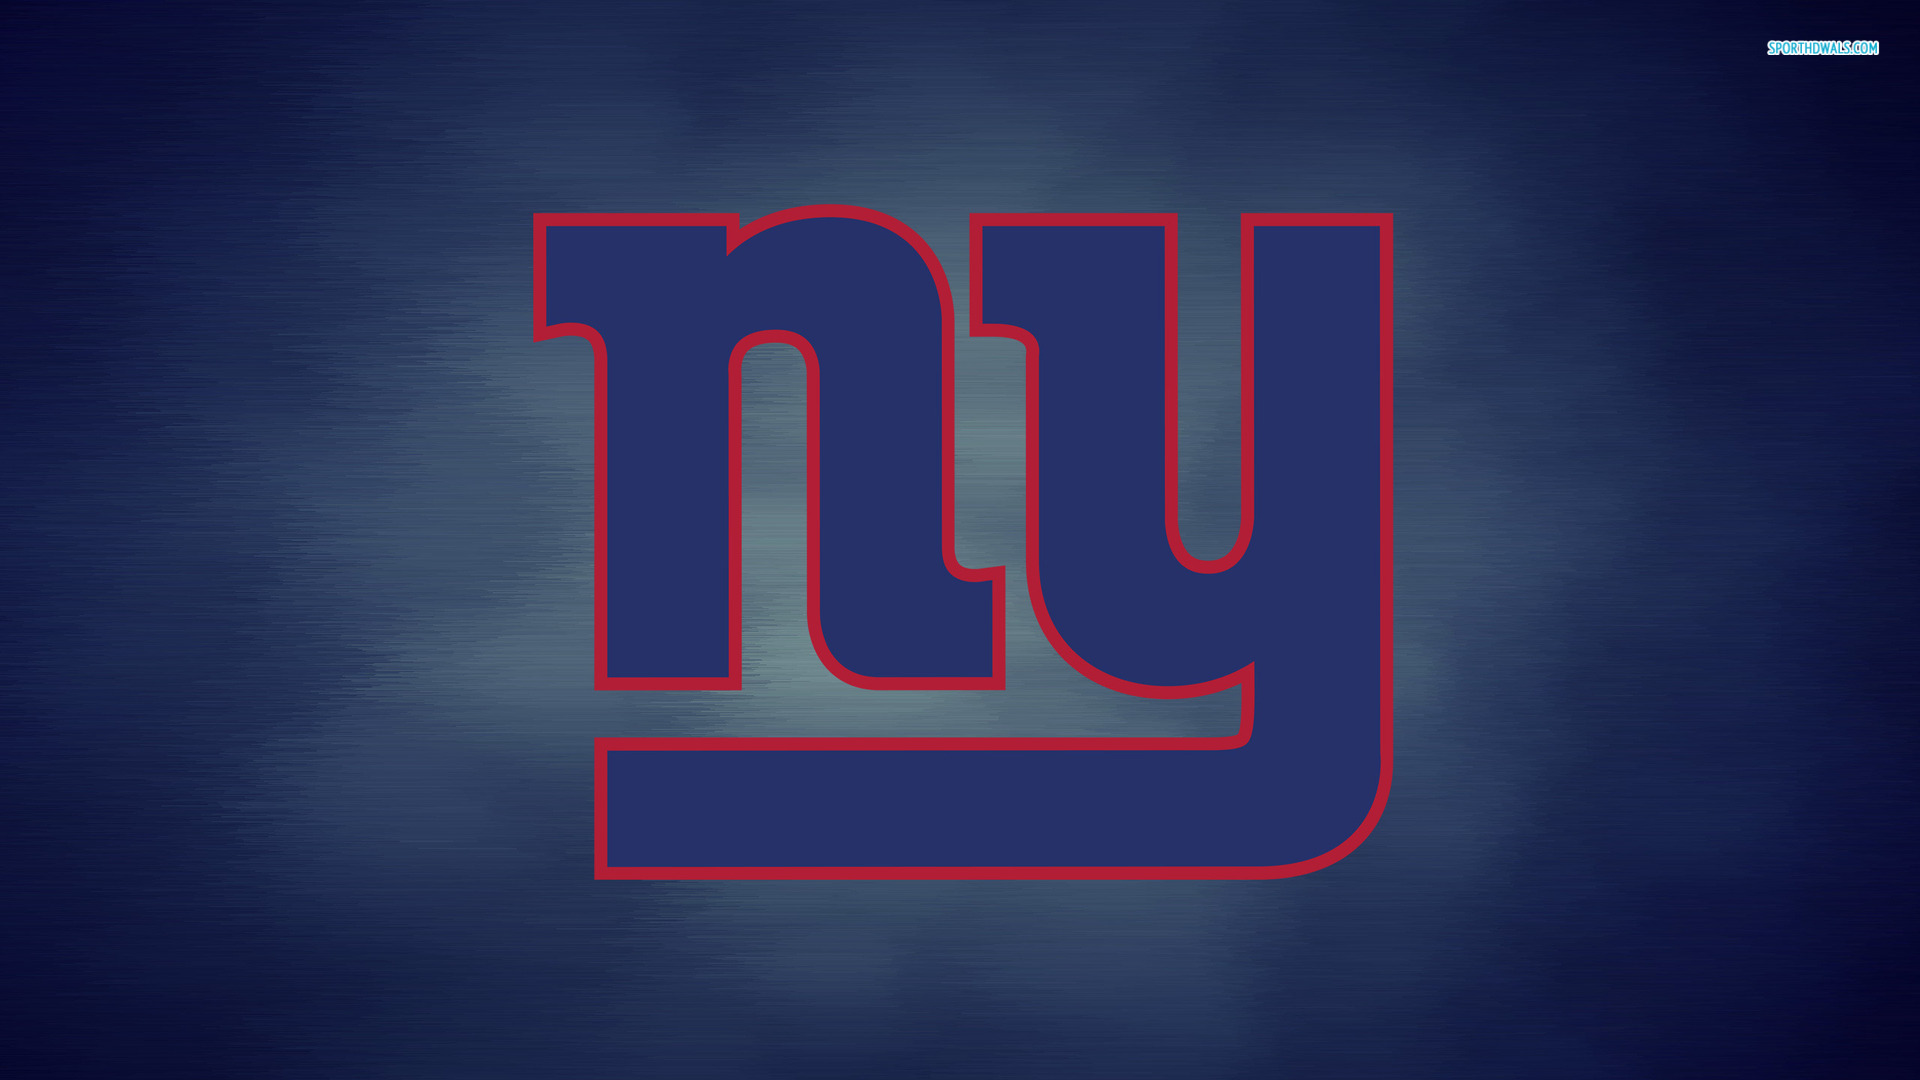 Enjoy this New York Giants background